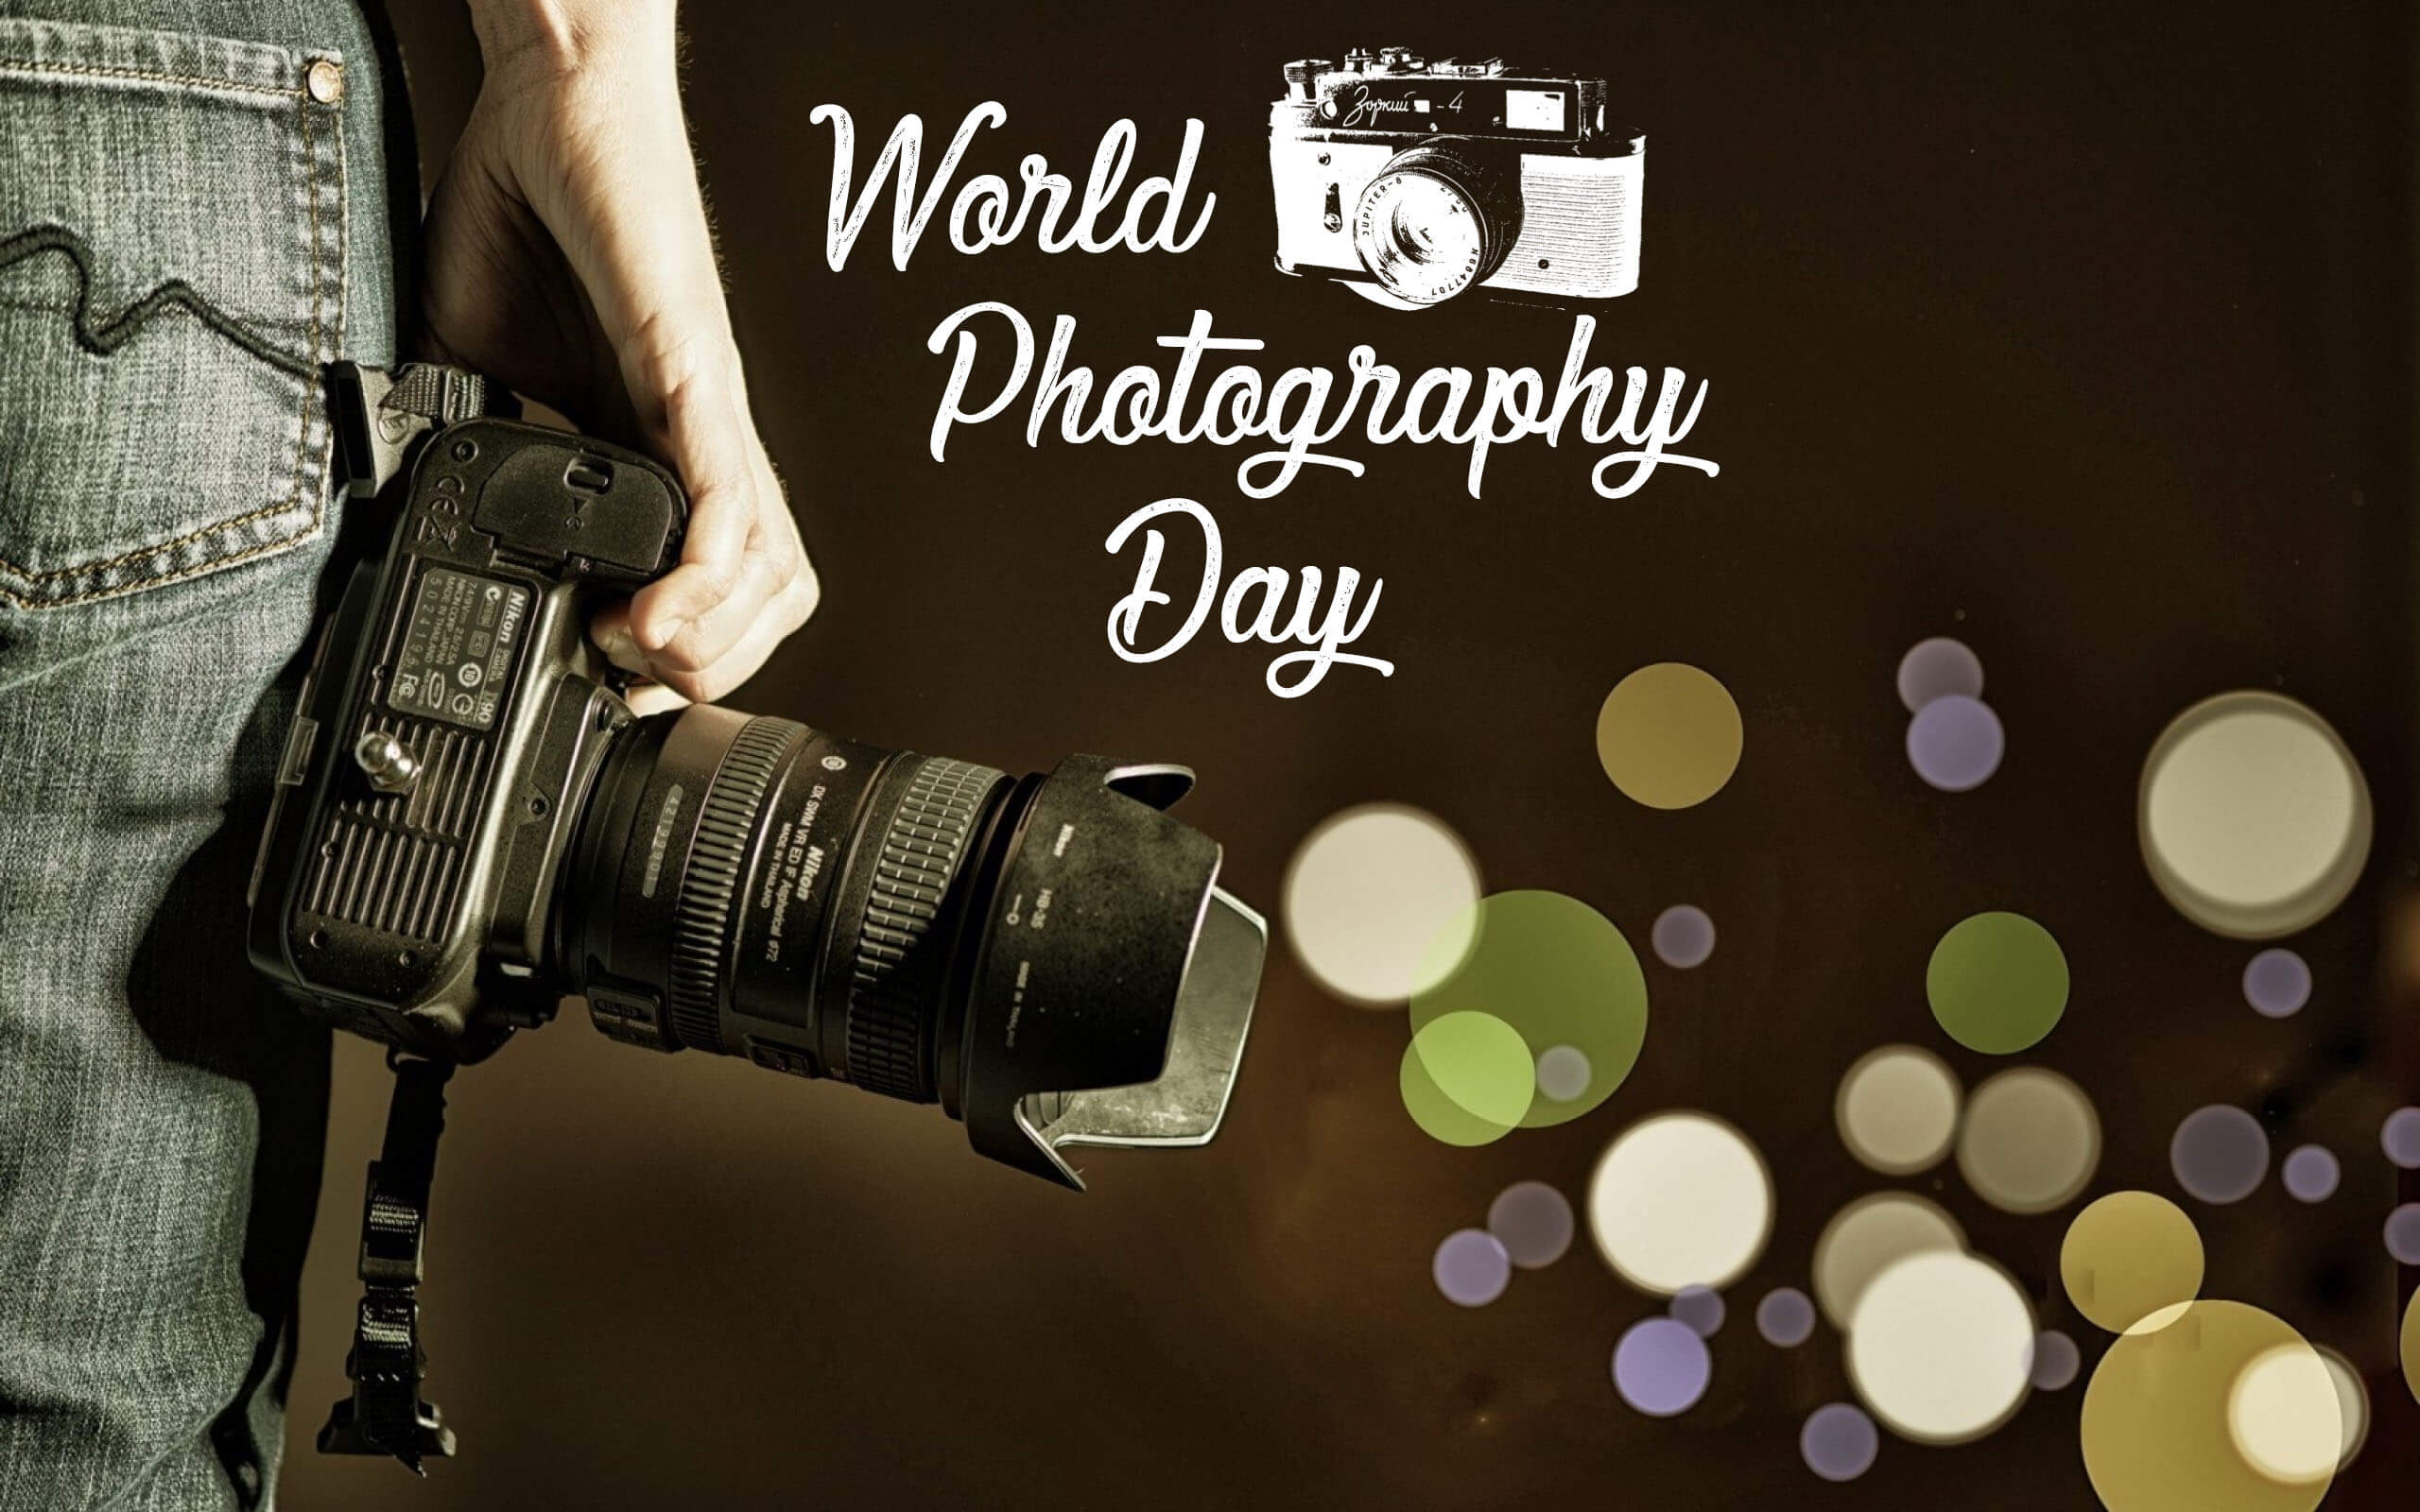 world photography day camera in hand 4k hd wallpaper